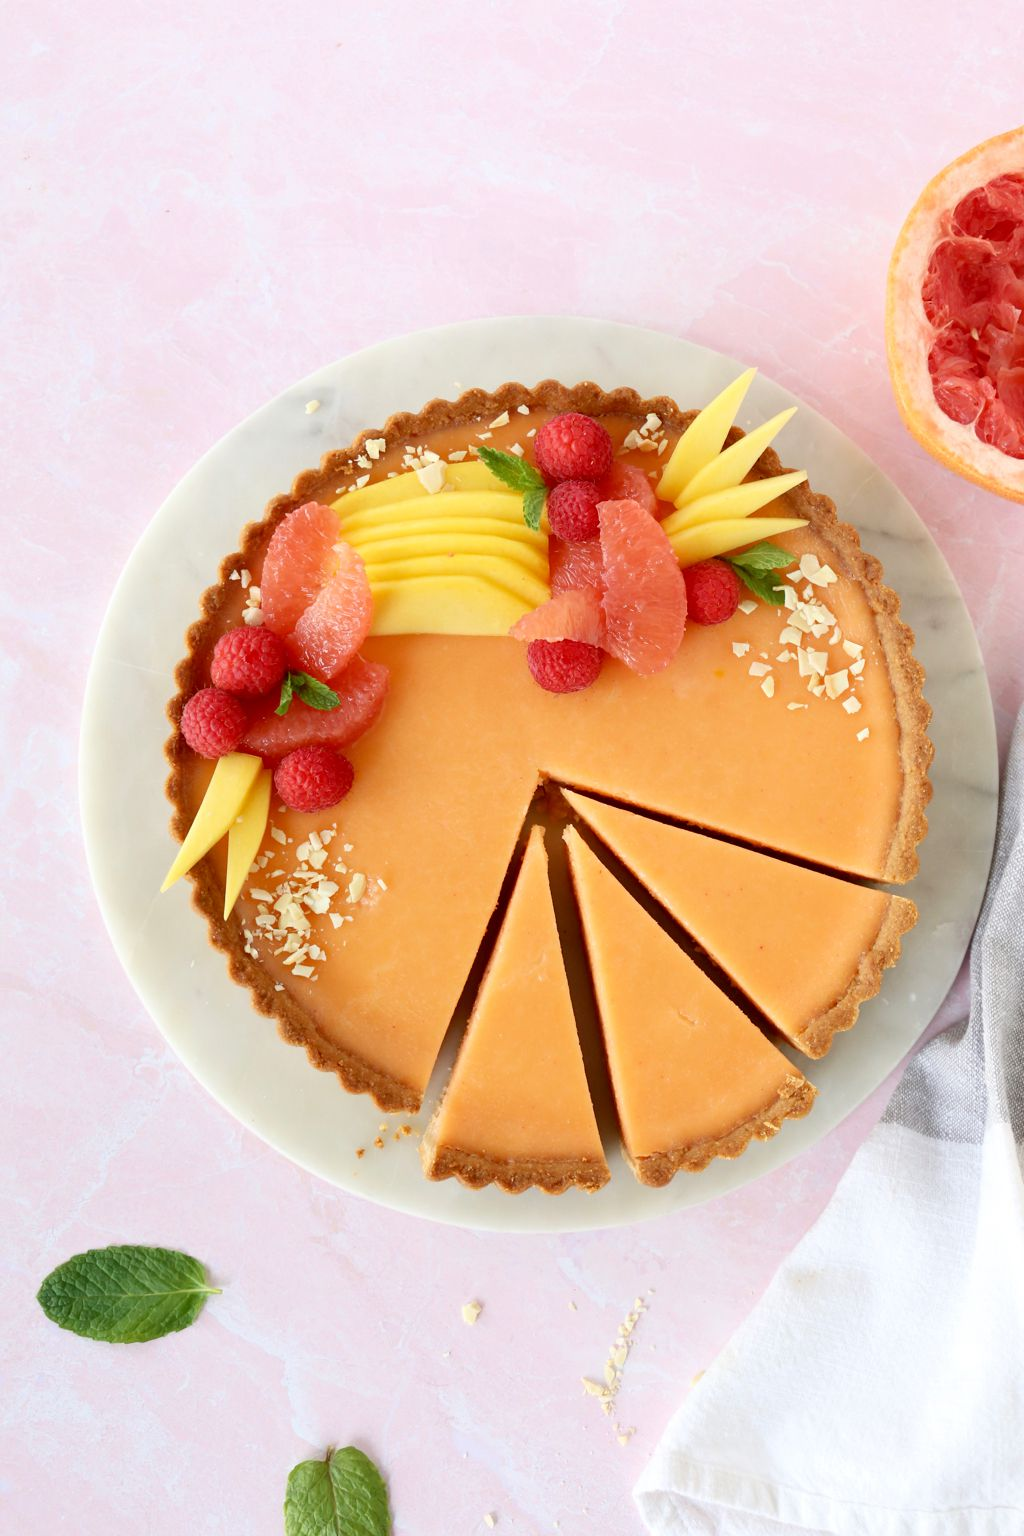 Grapefruit Curd Tart with Almond Shortbread Crust